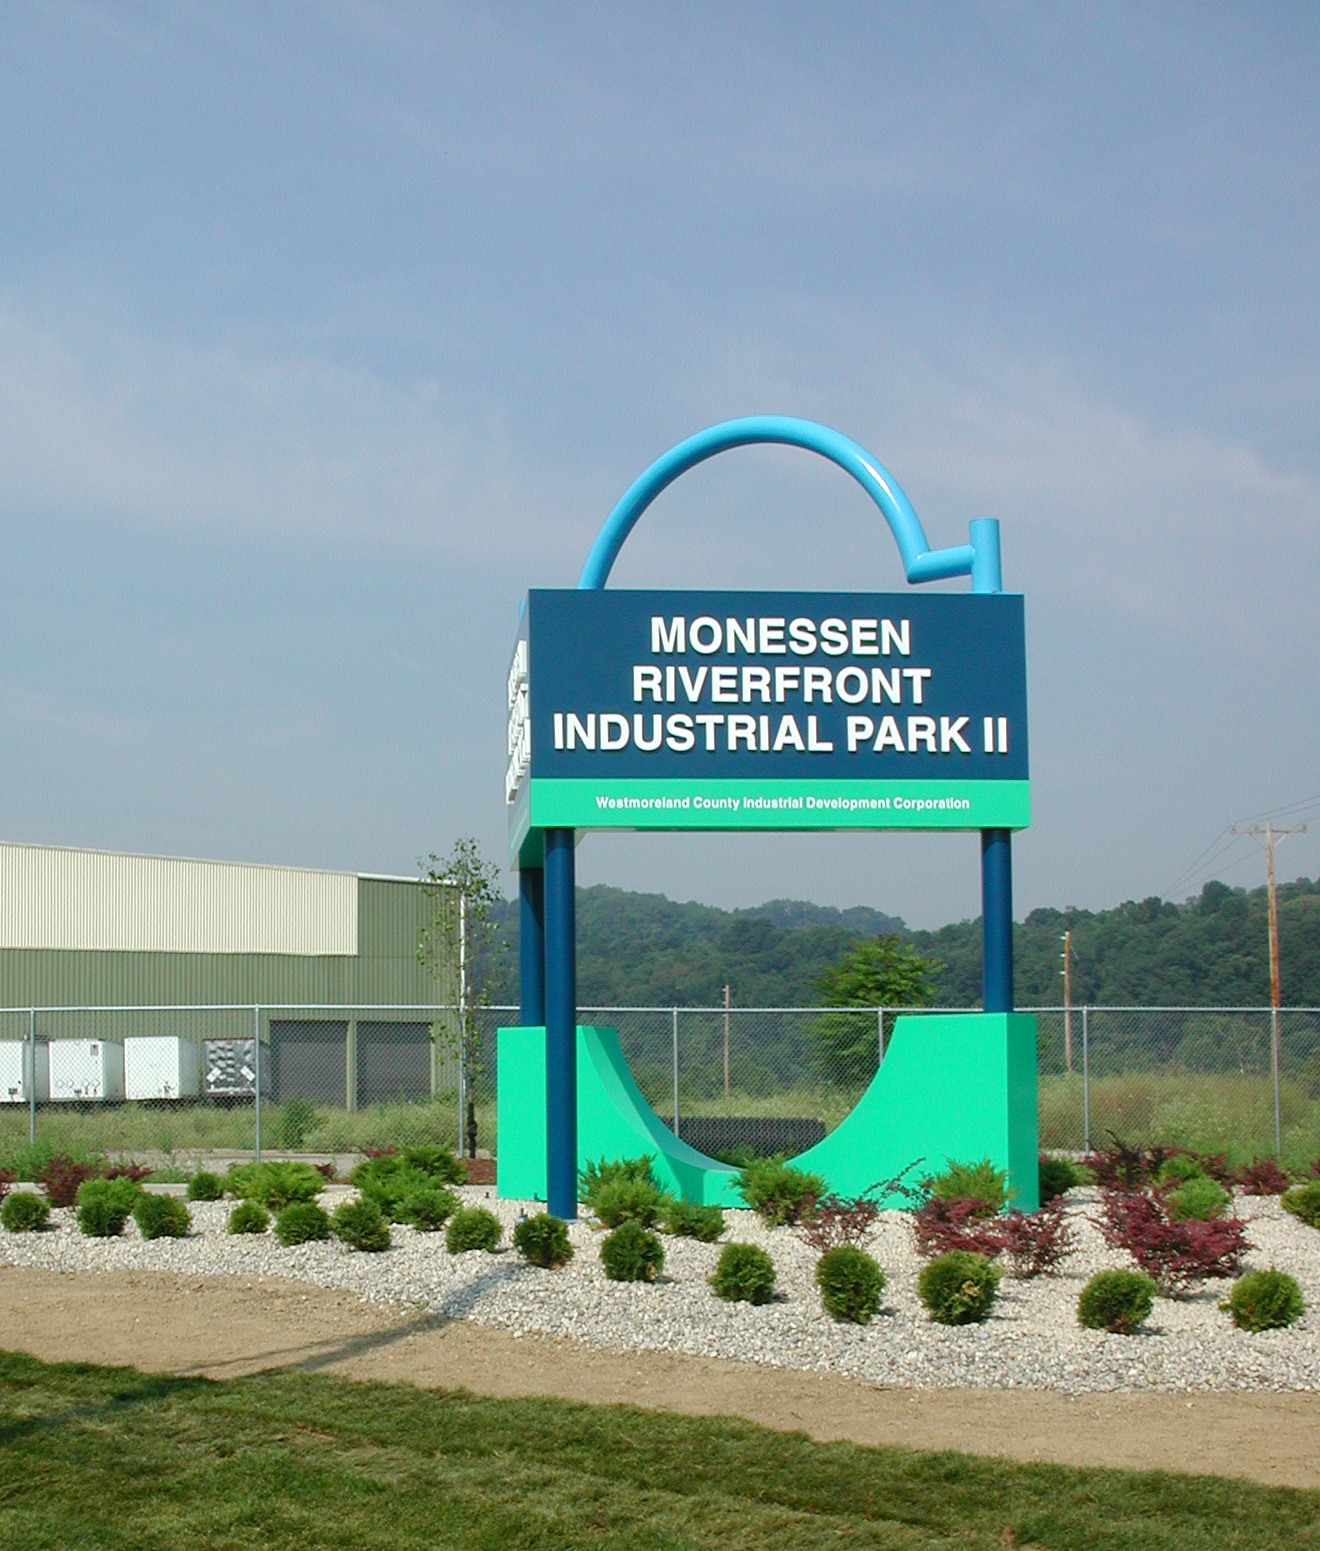 Entrance Sign Monessen Riverfront Industrial Park